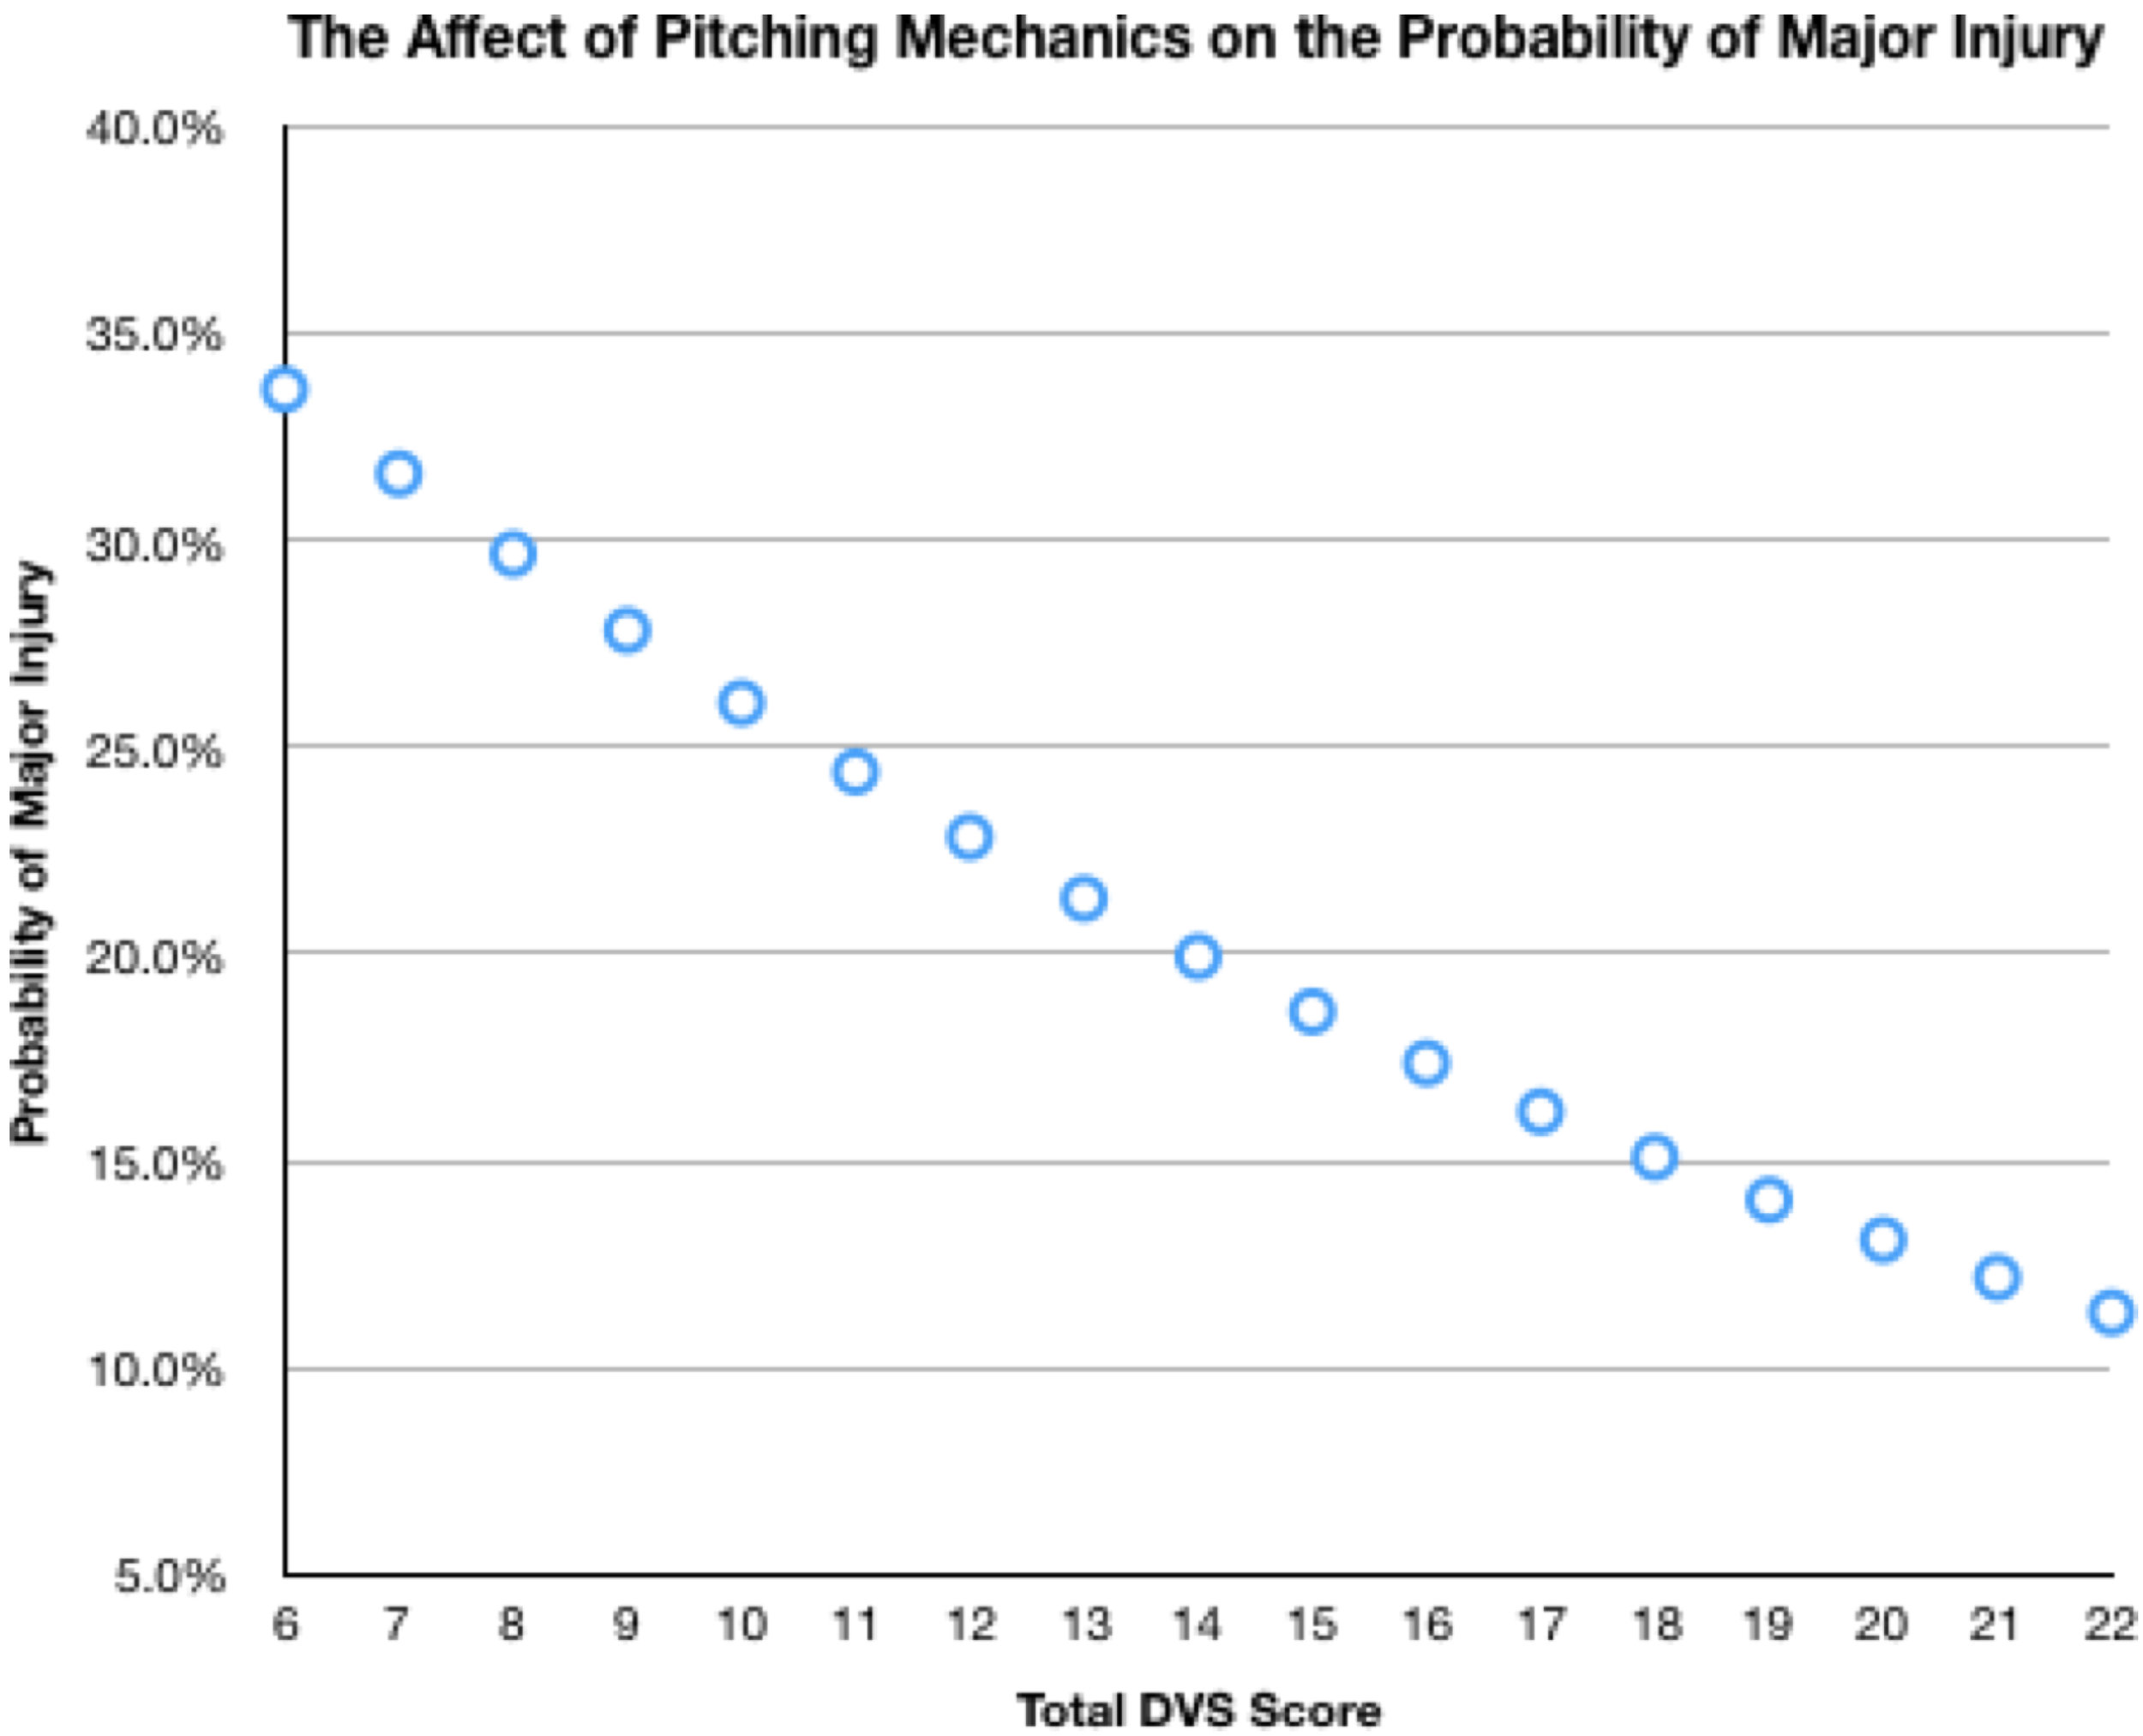 The Affect of Pitching Mechanics on Probability of Major Injury.jpg